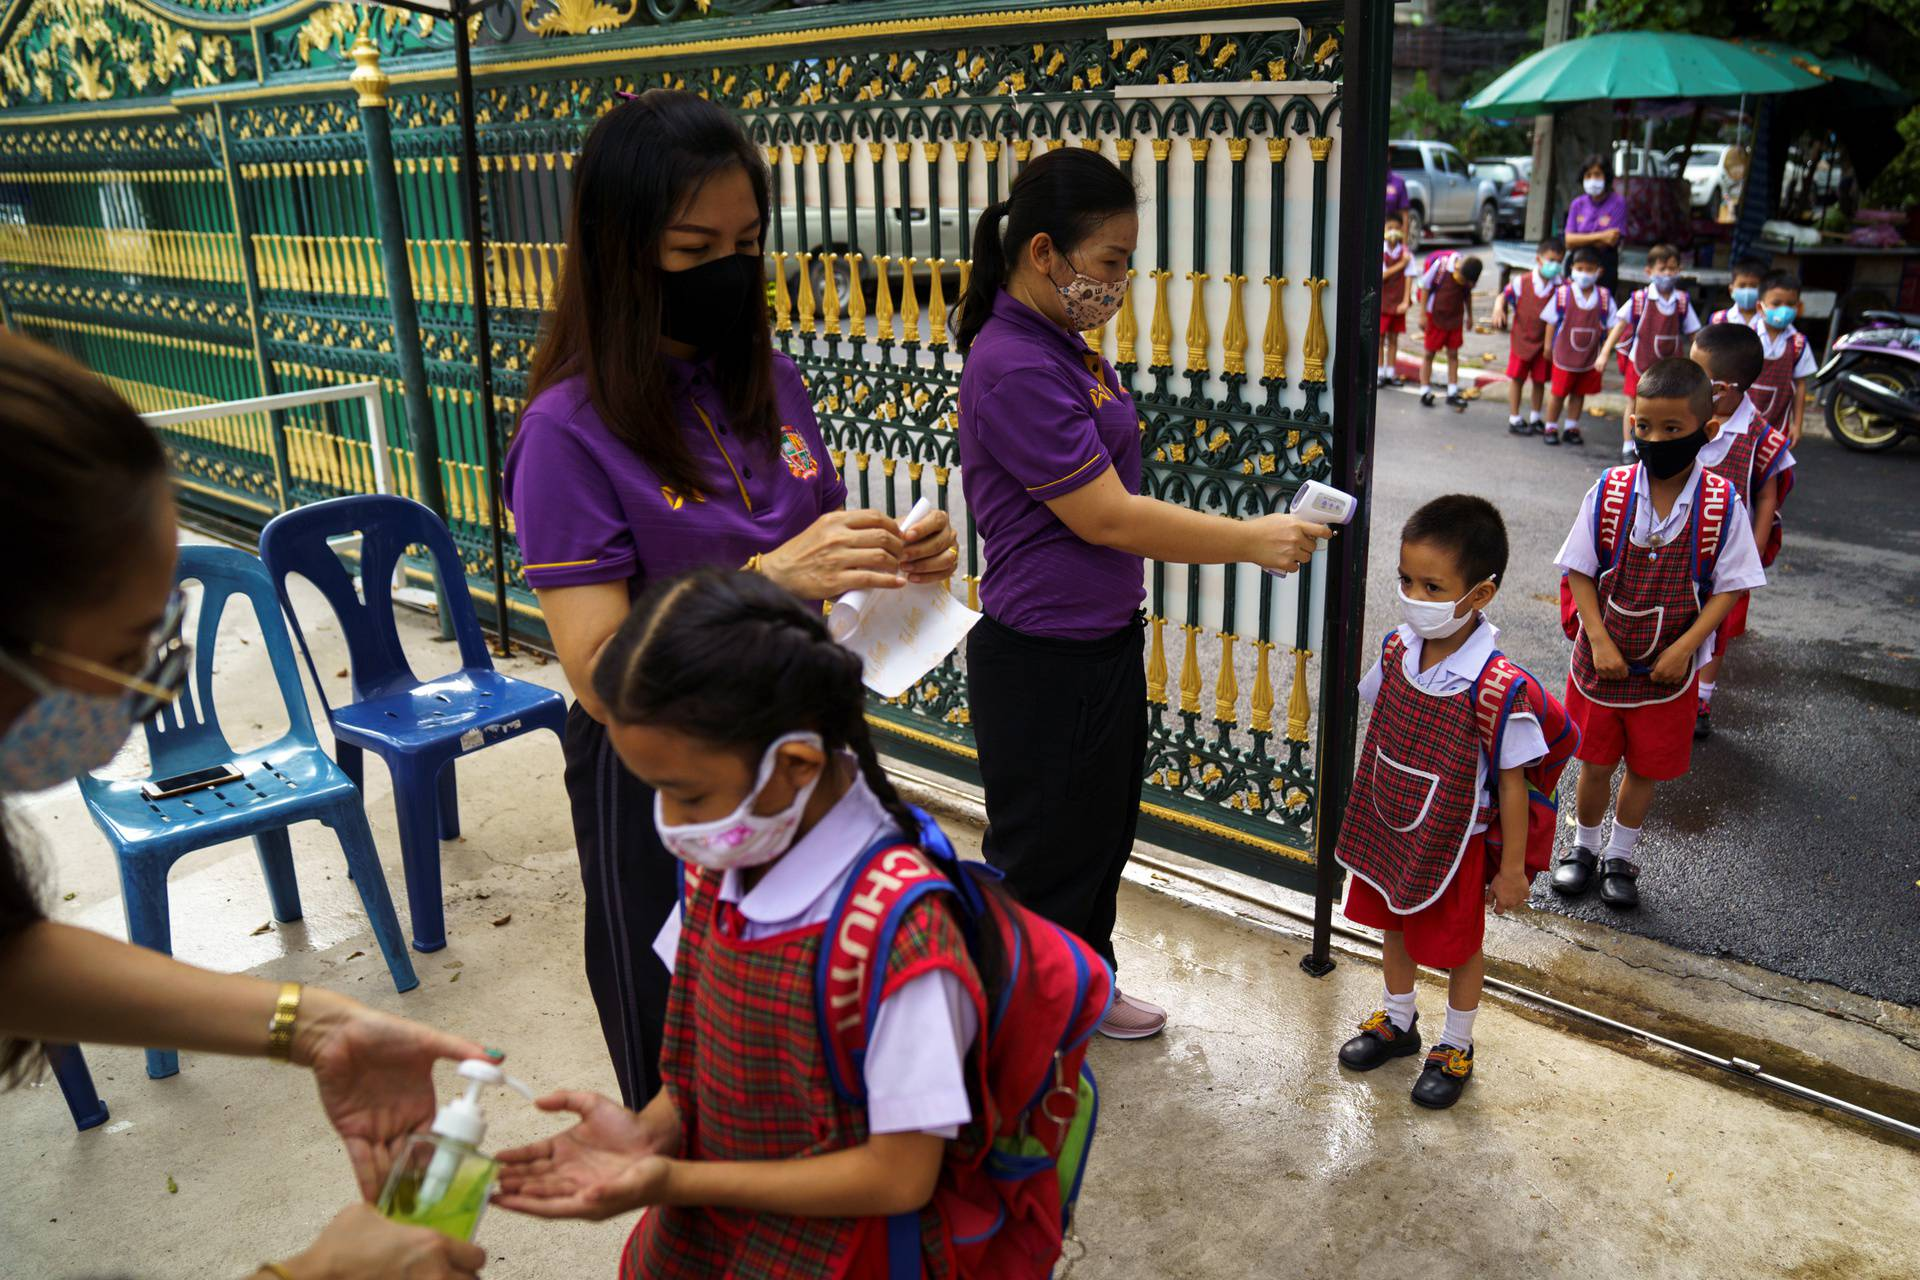 Thai kindergarten students rehearse social distancing and measures to prevent the spread of the coronavirus disease (COVID-19) in Bangkok